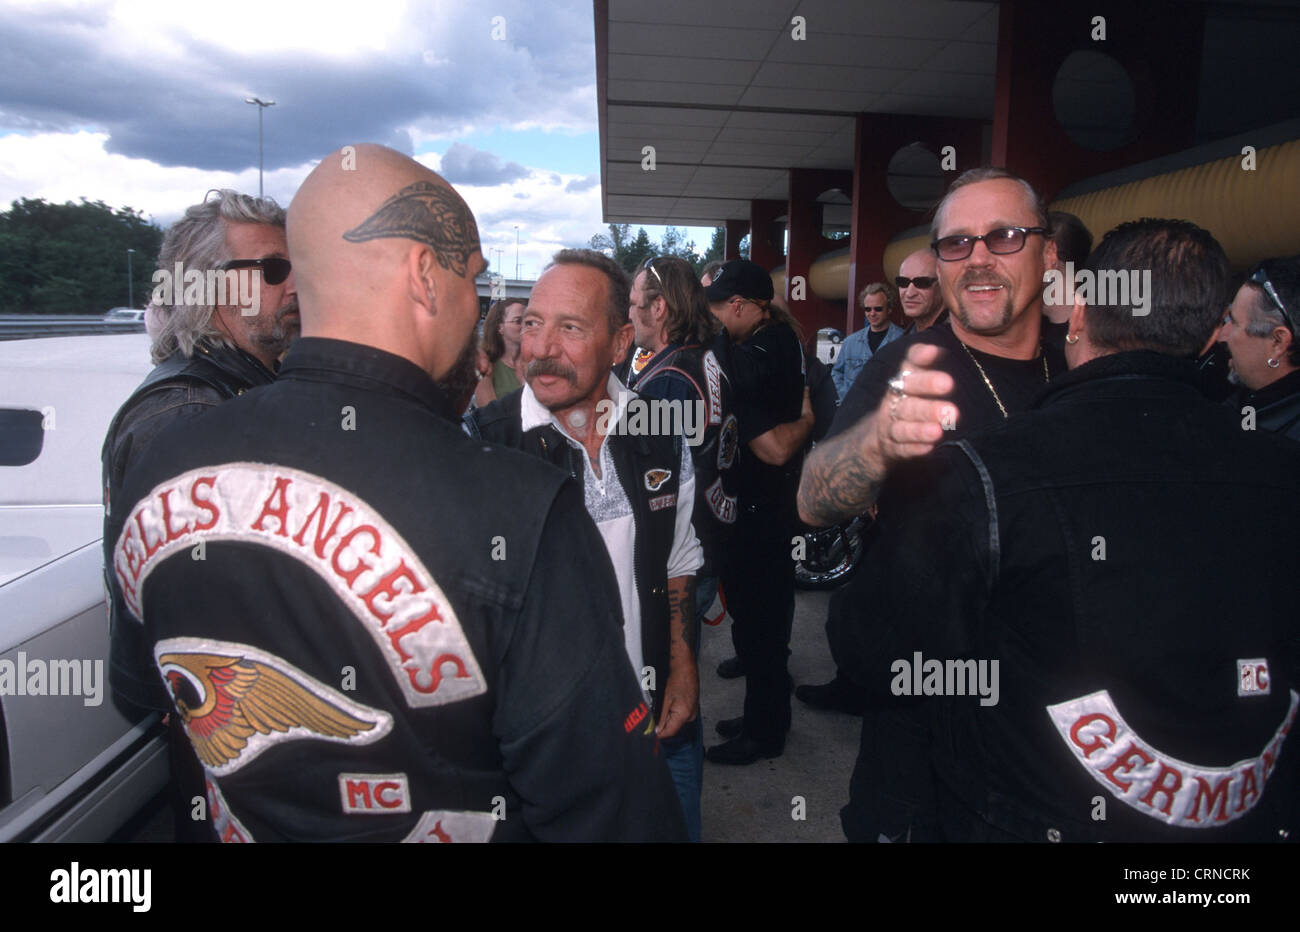 Hells Angels Germany Stock Photos & Hells Angels Germany Stock